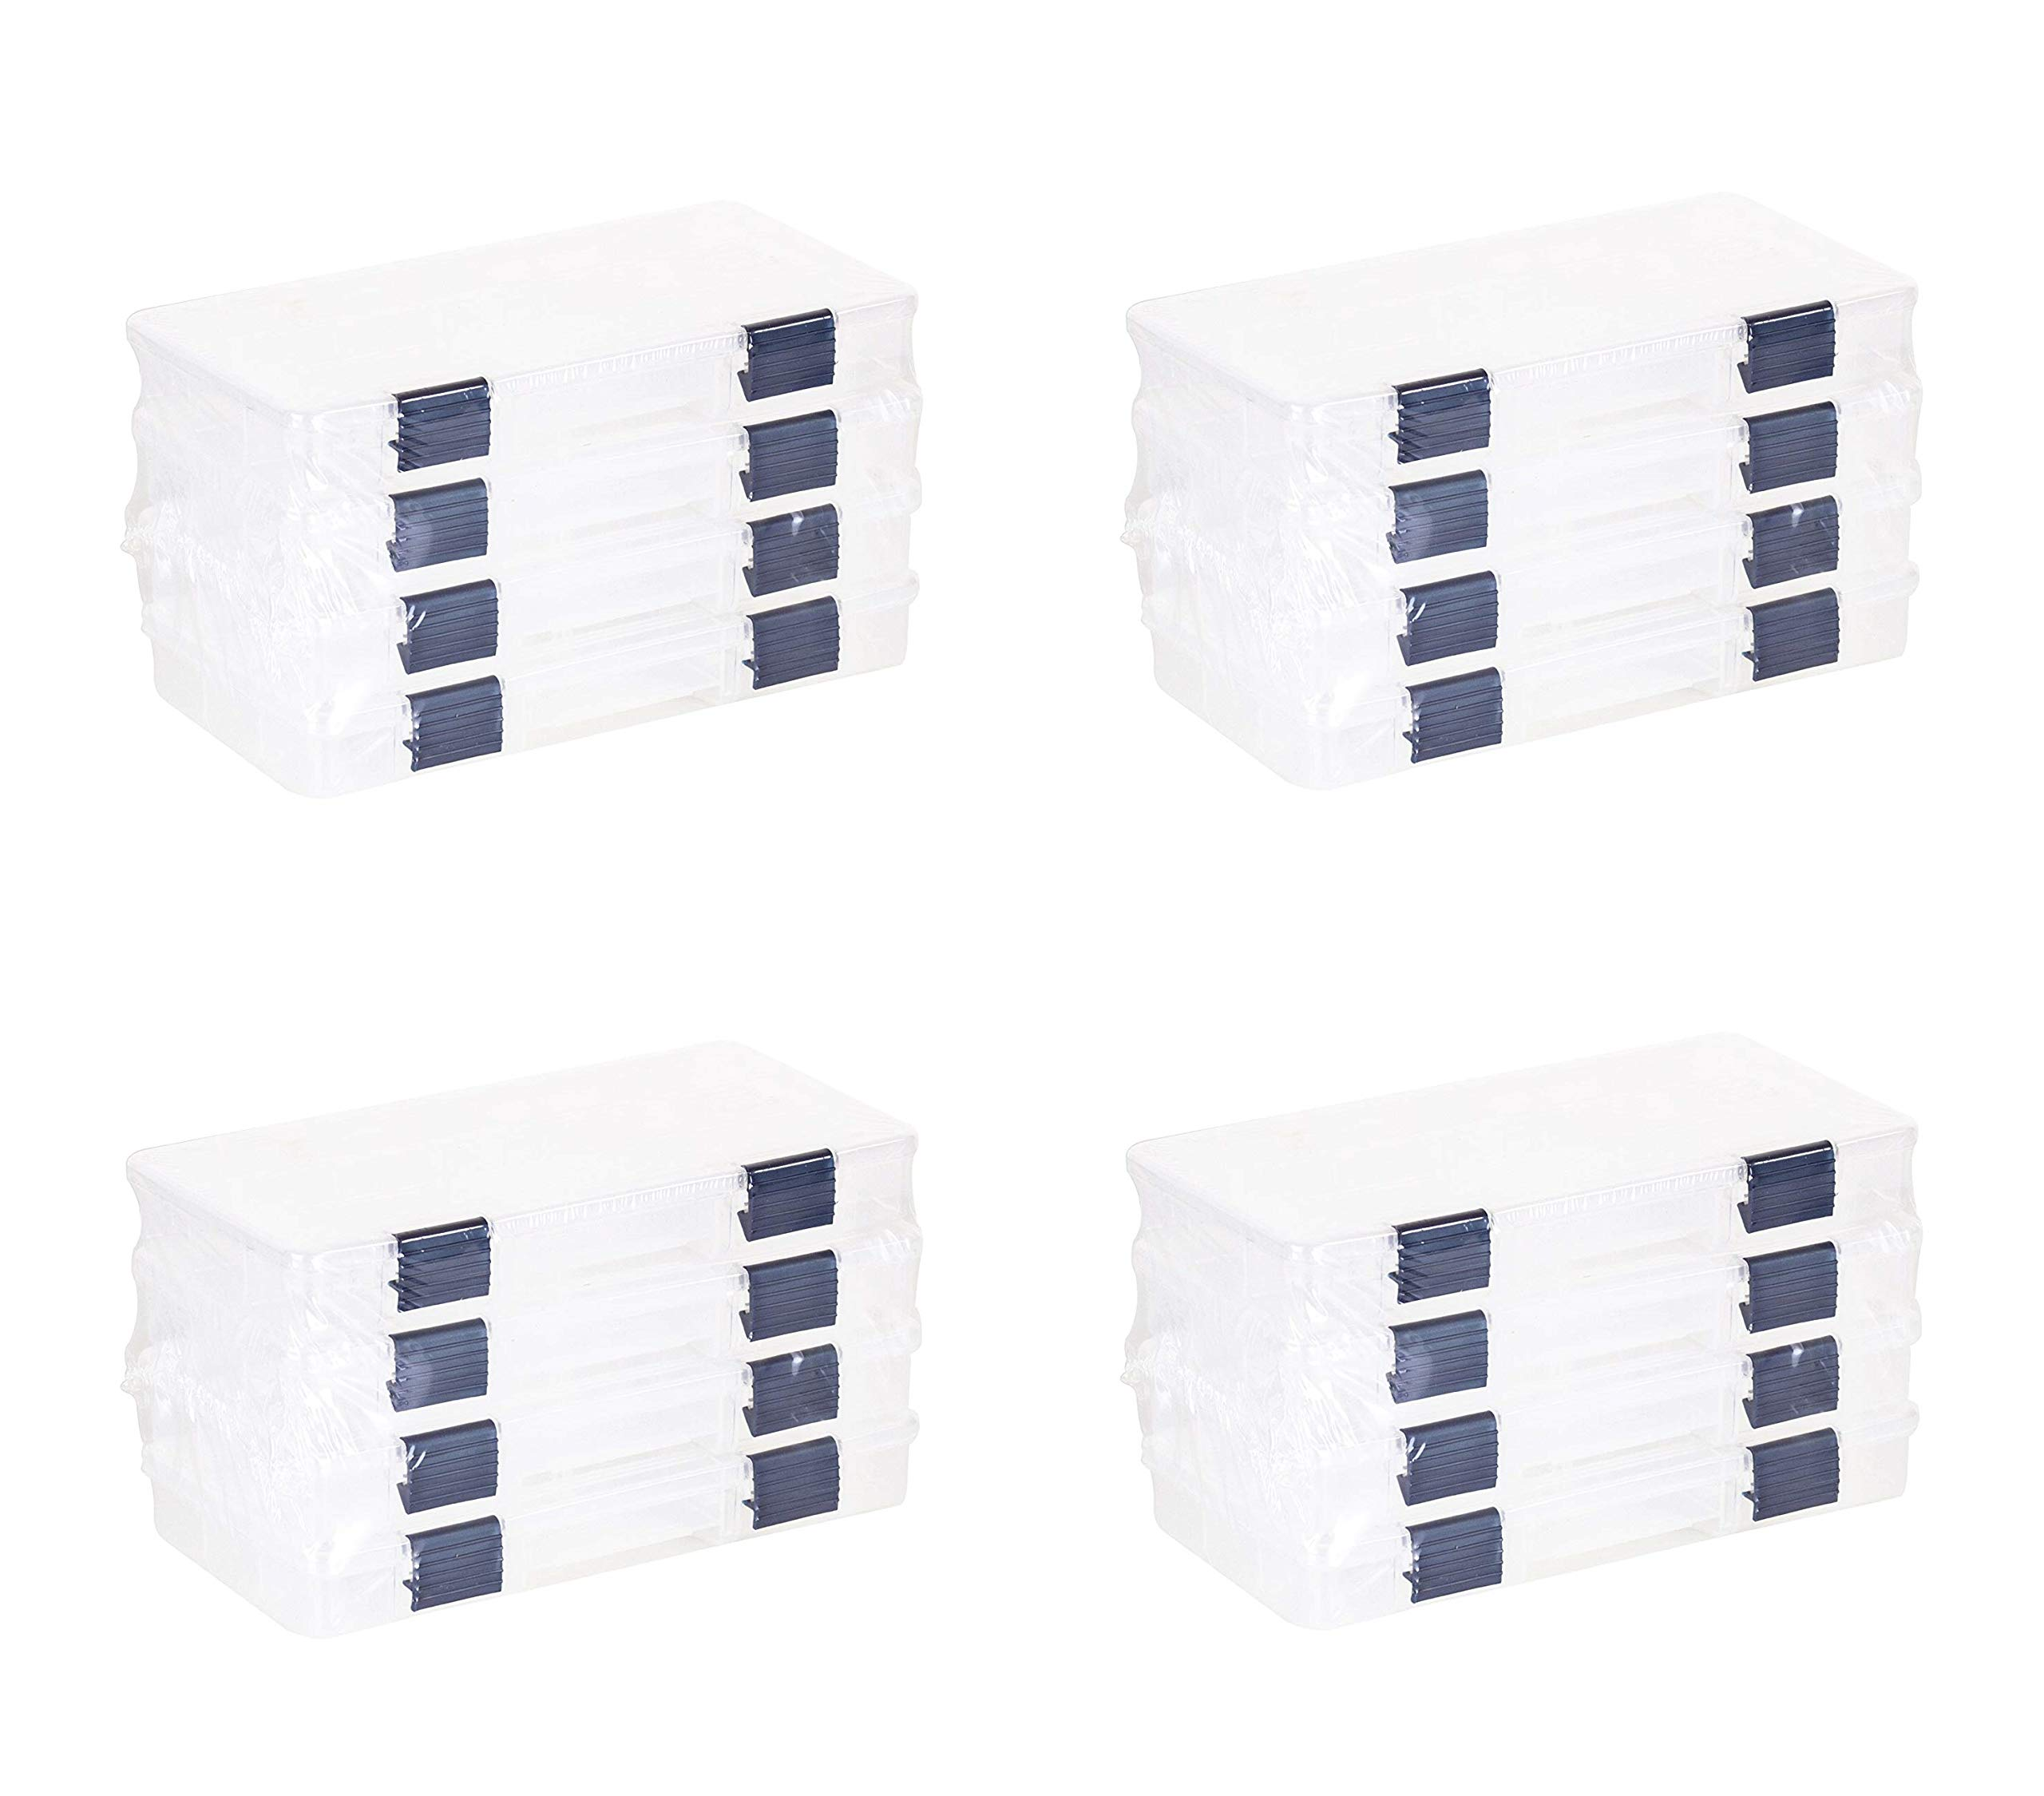 Plano Tackle Boxes,4 Pack of 3500 Prolatch Stowaway Tackle Utility Boxes, Fishing Tackle Storage (4 X Pack of 4)